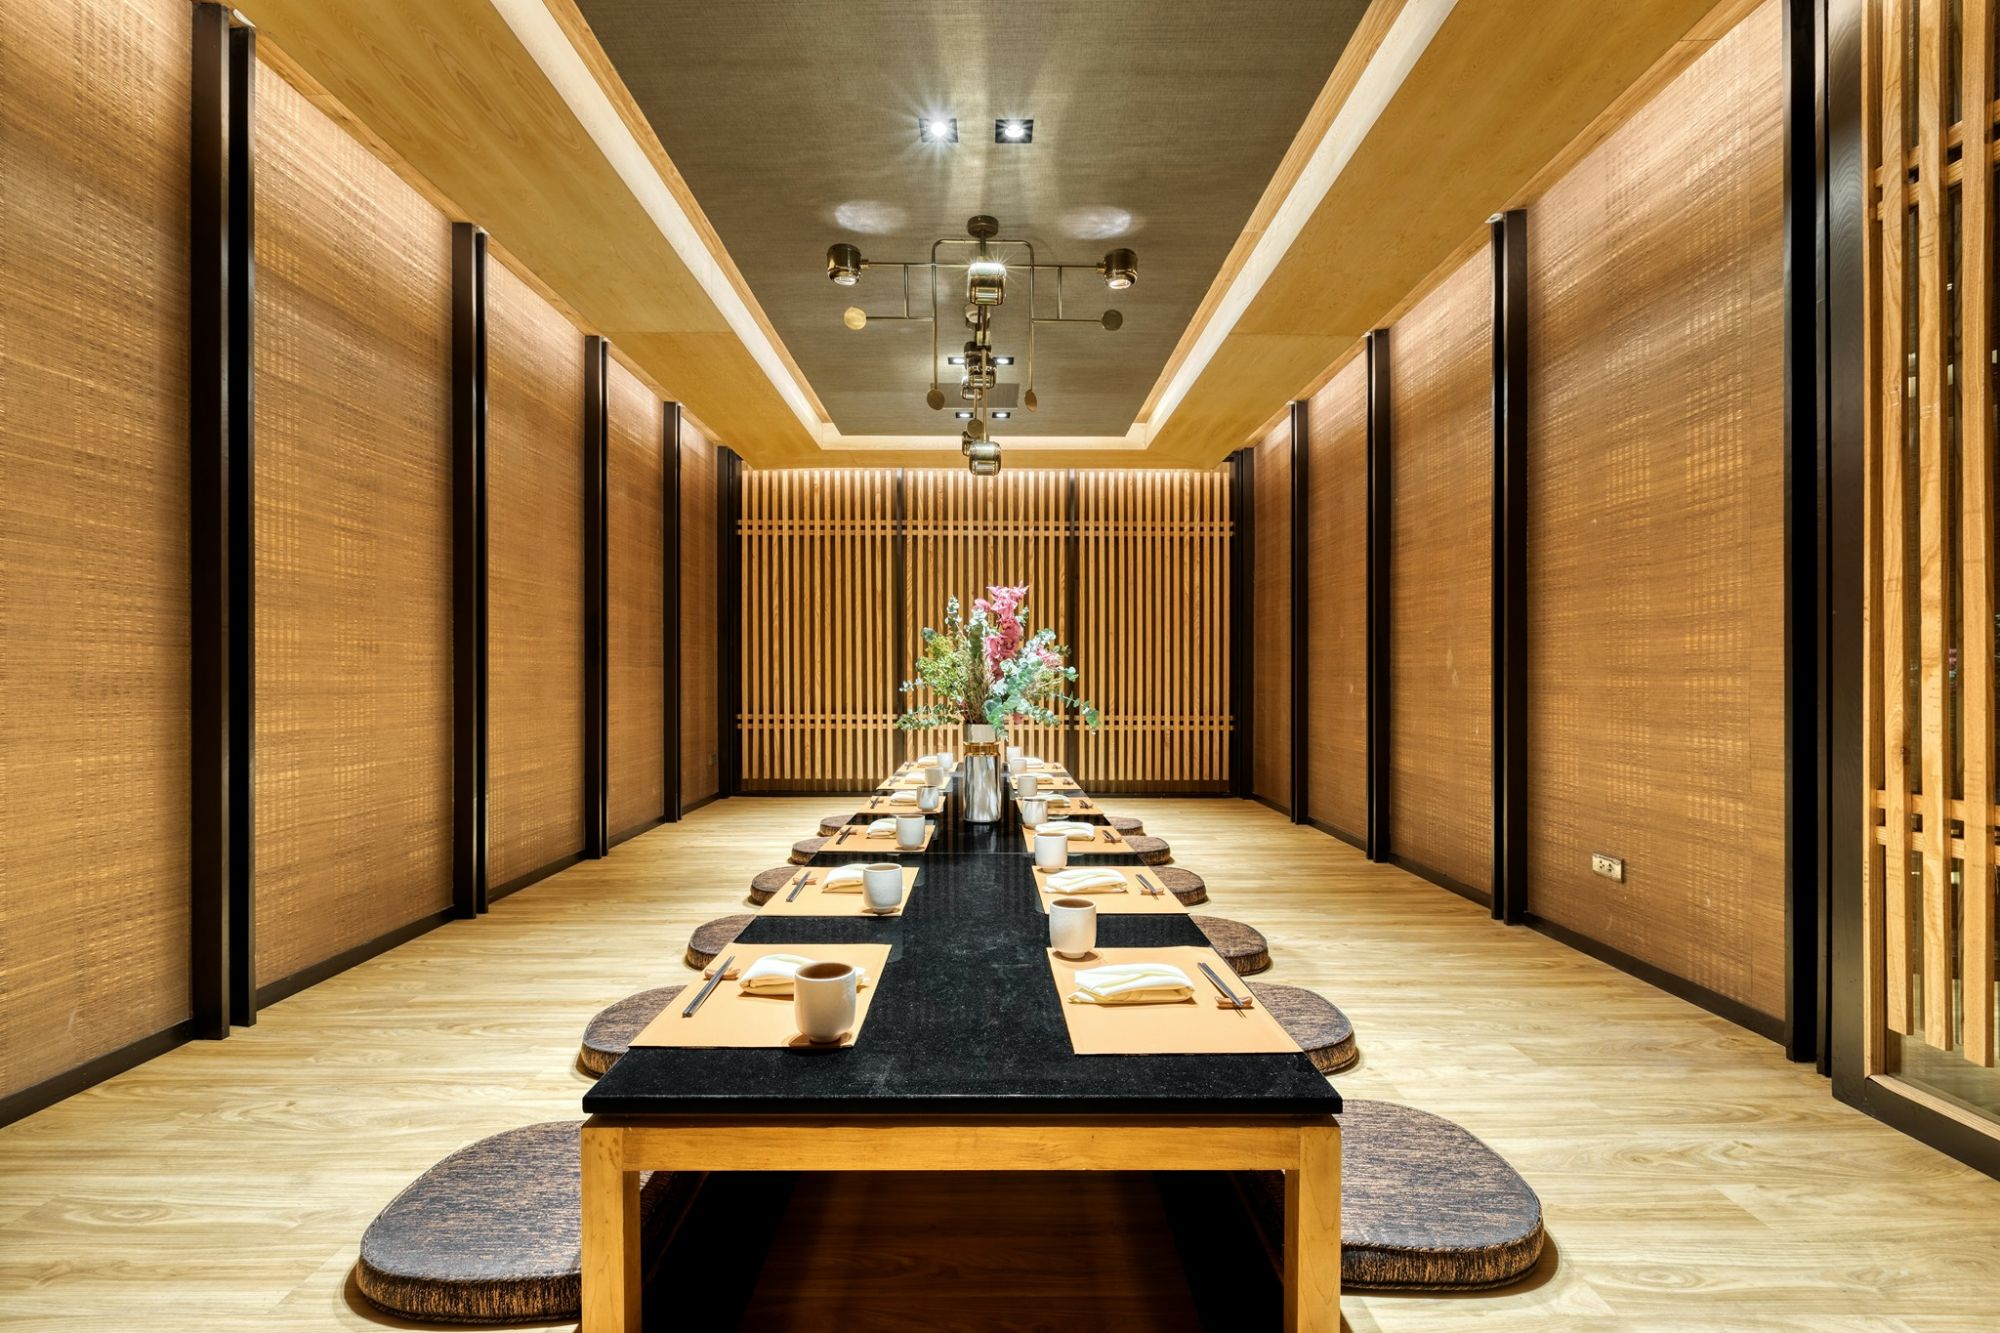 Thailand's Top Japanese Restaurants of 2020